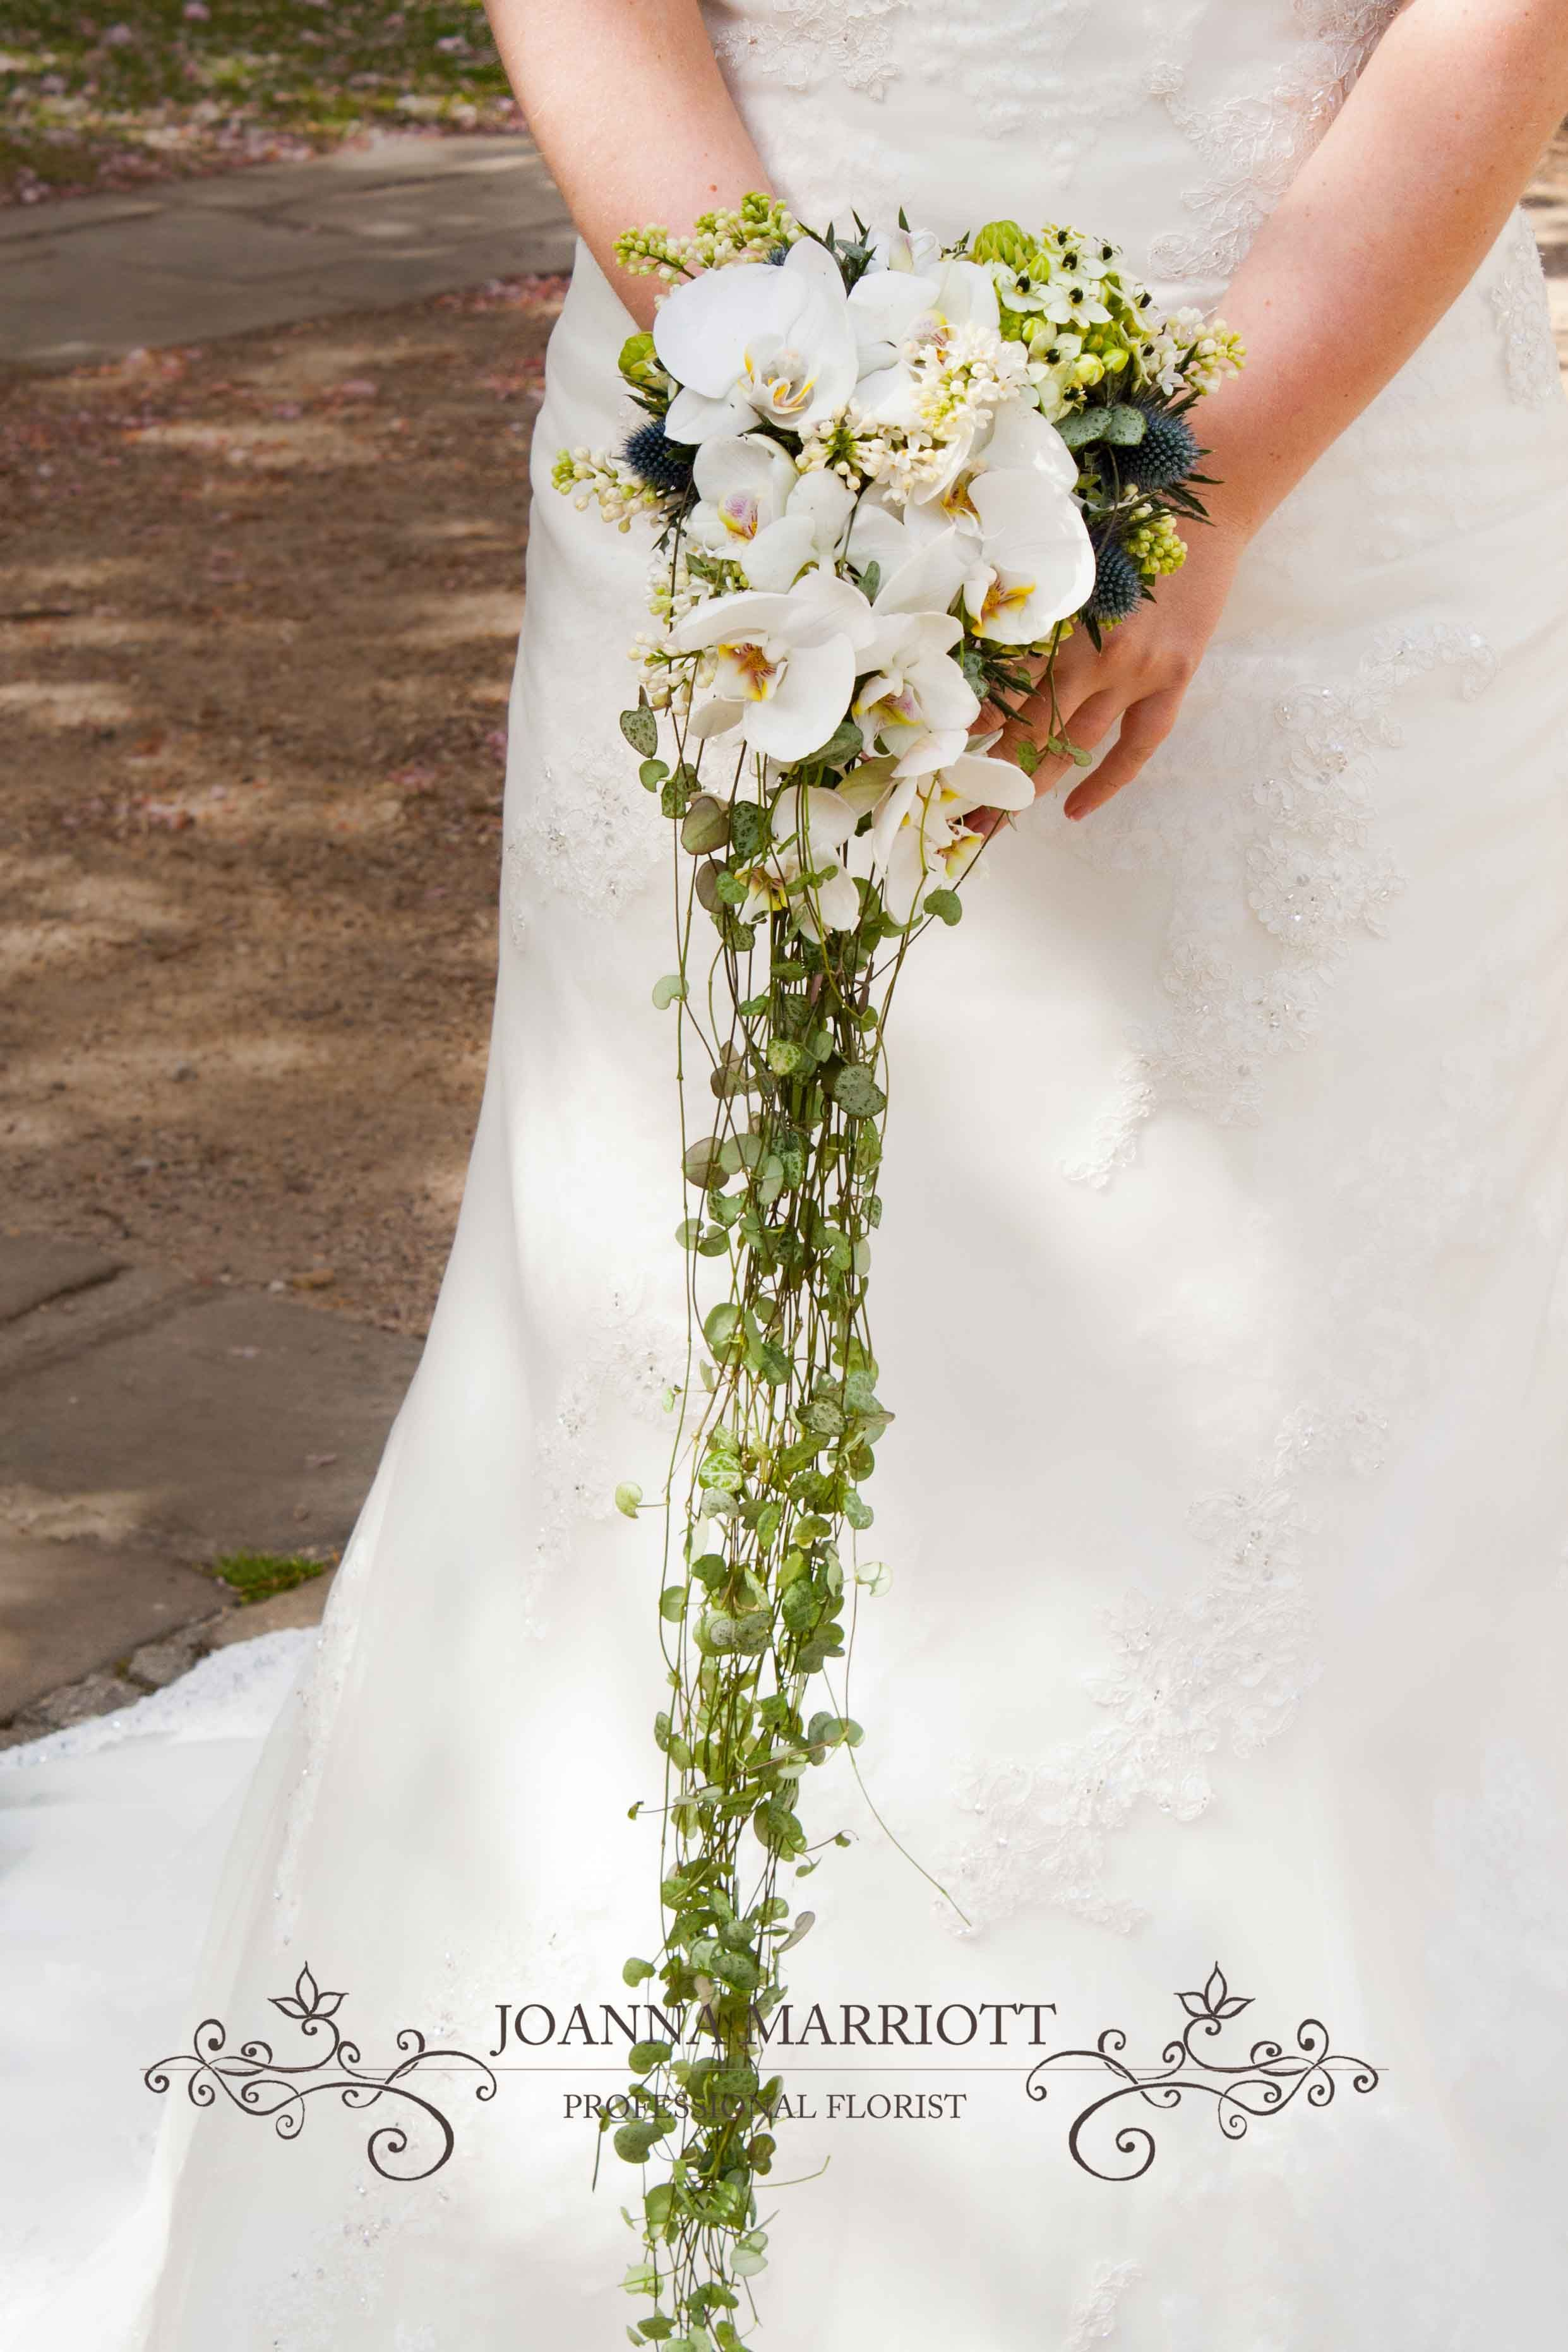 Trailing White Bridal Bouquet Made Of Trailing Ceropegia White Orchid Ornitogalum White Lilac And Thistle White Bridal Bouquet Bridal Flowers White Orchids